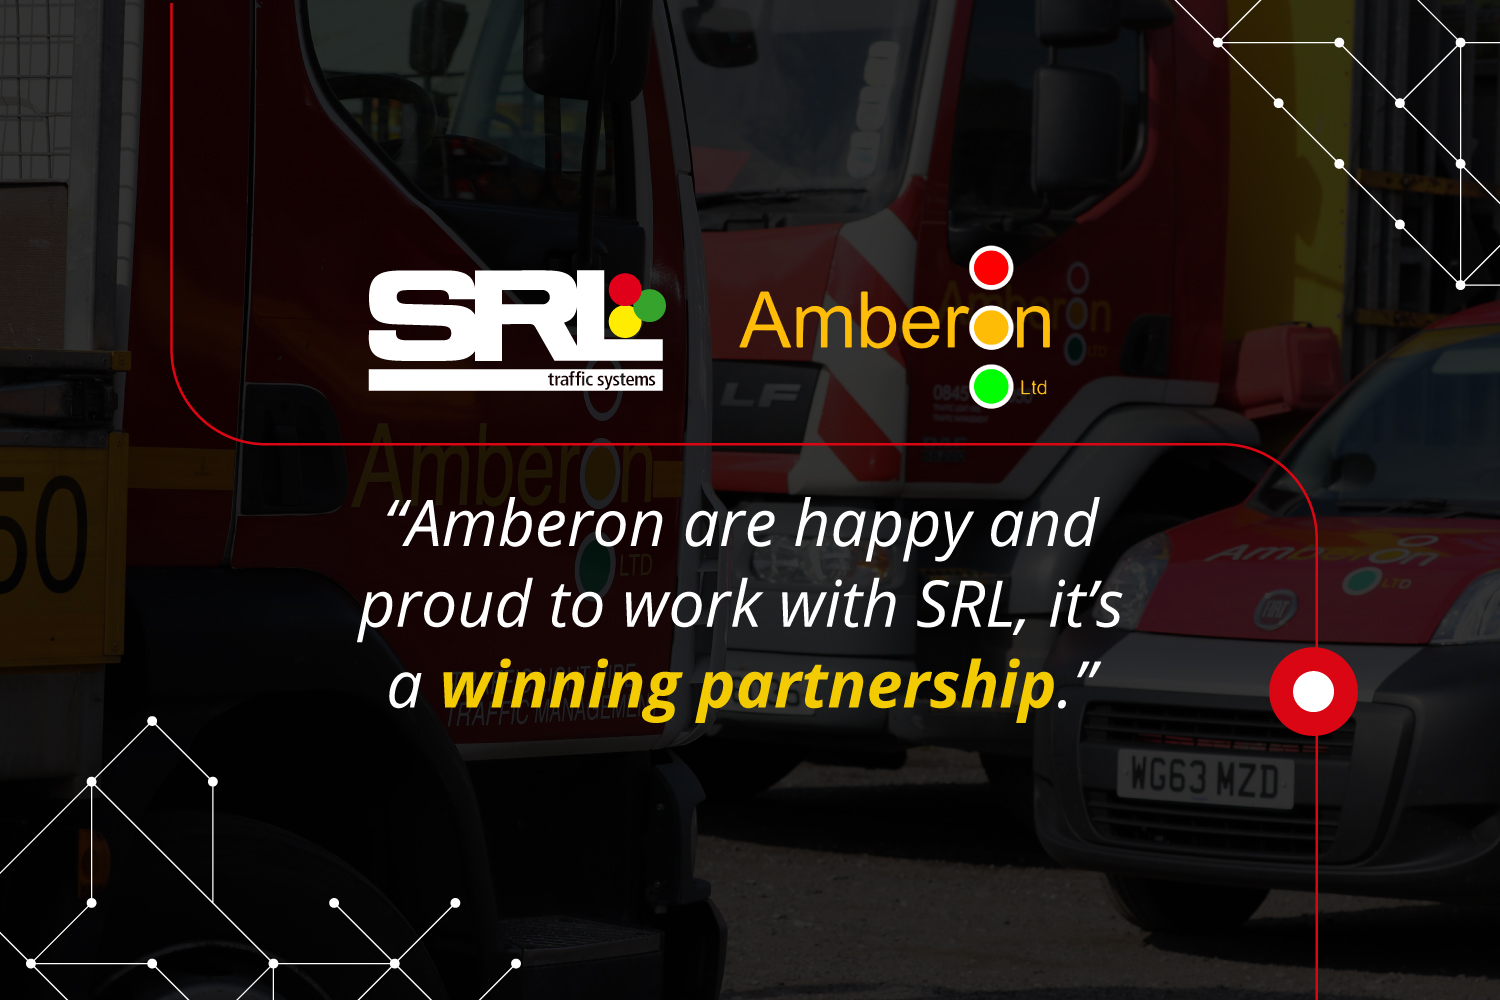 Amberon increases fleet with 40 more SRL traffic signals